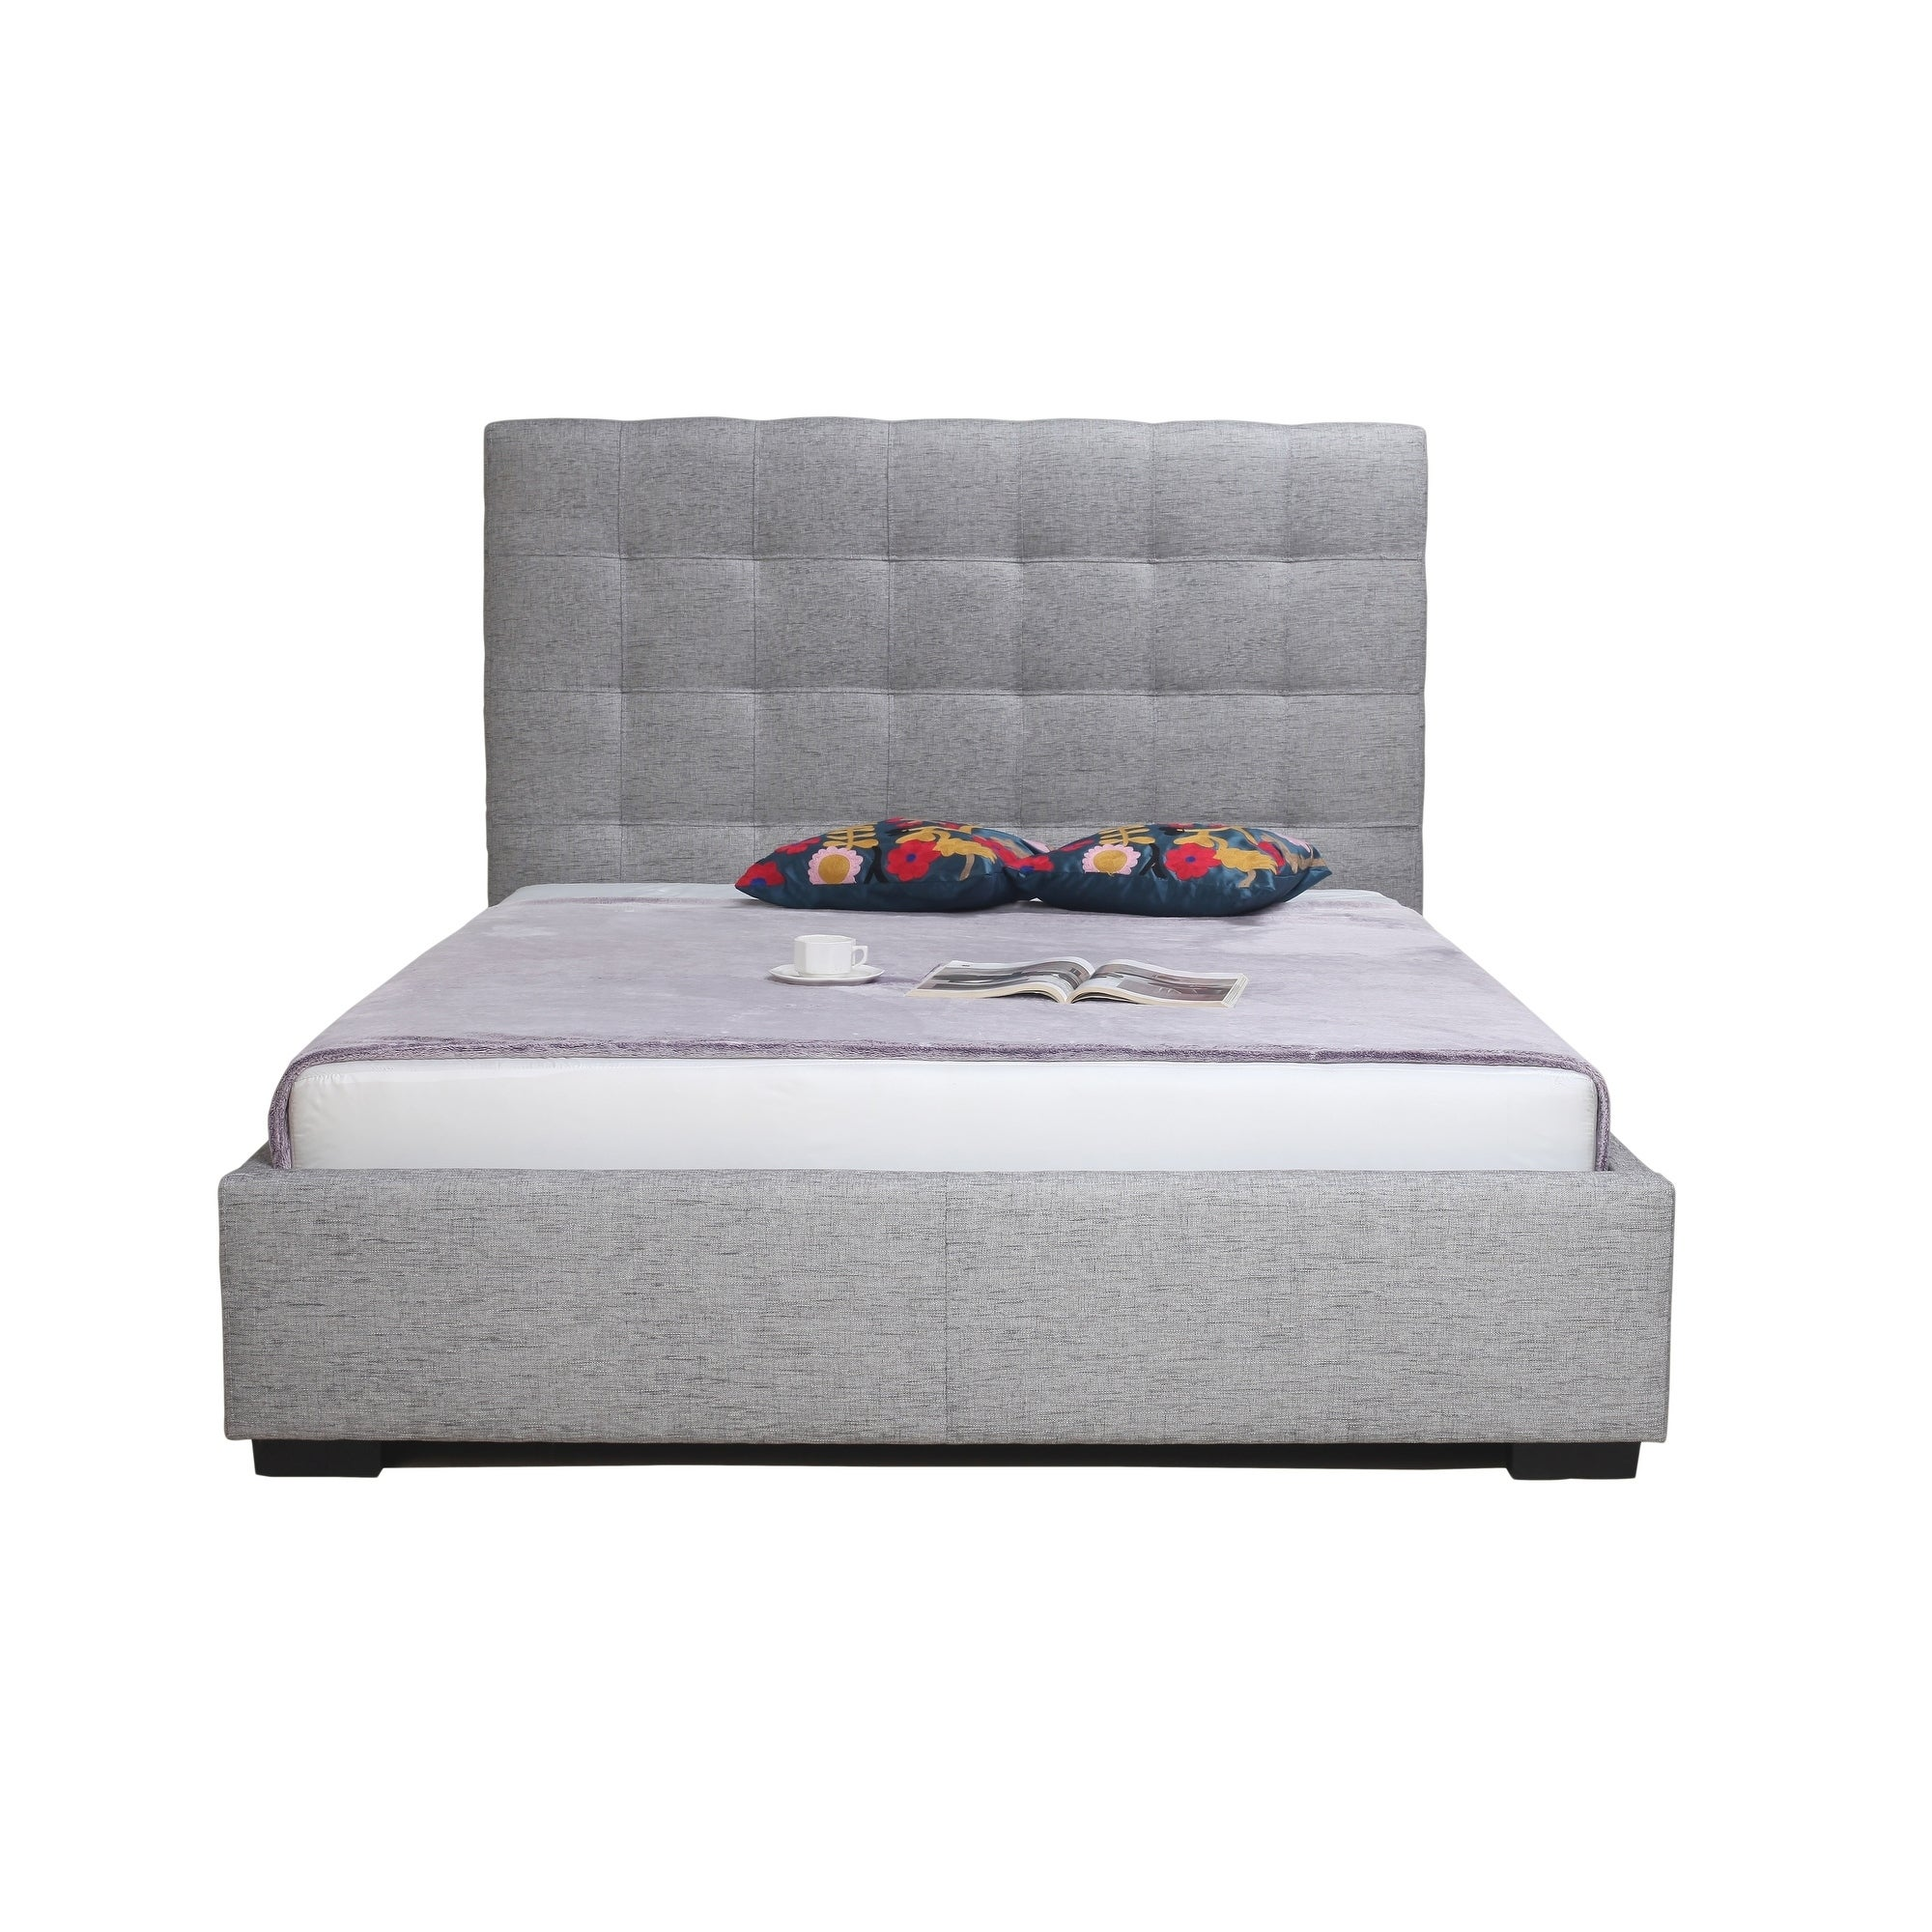 Aurelle Home Belle Light Grey California King Upholstered Storage Bed On Free Shipping Today 18706499